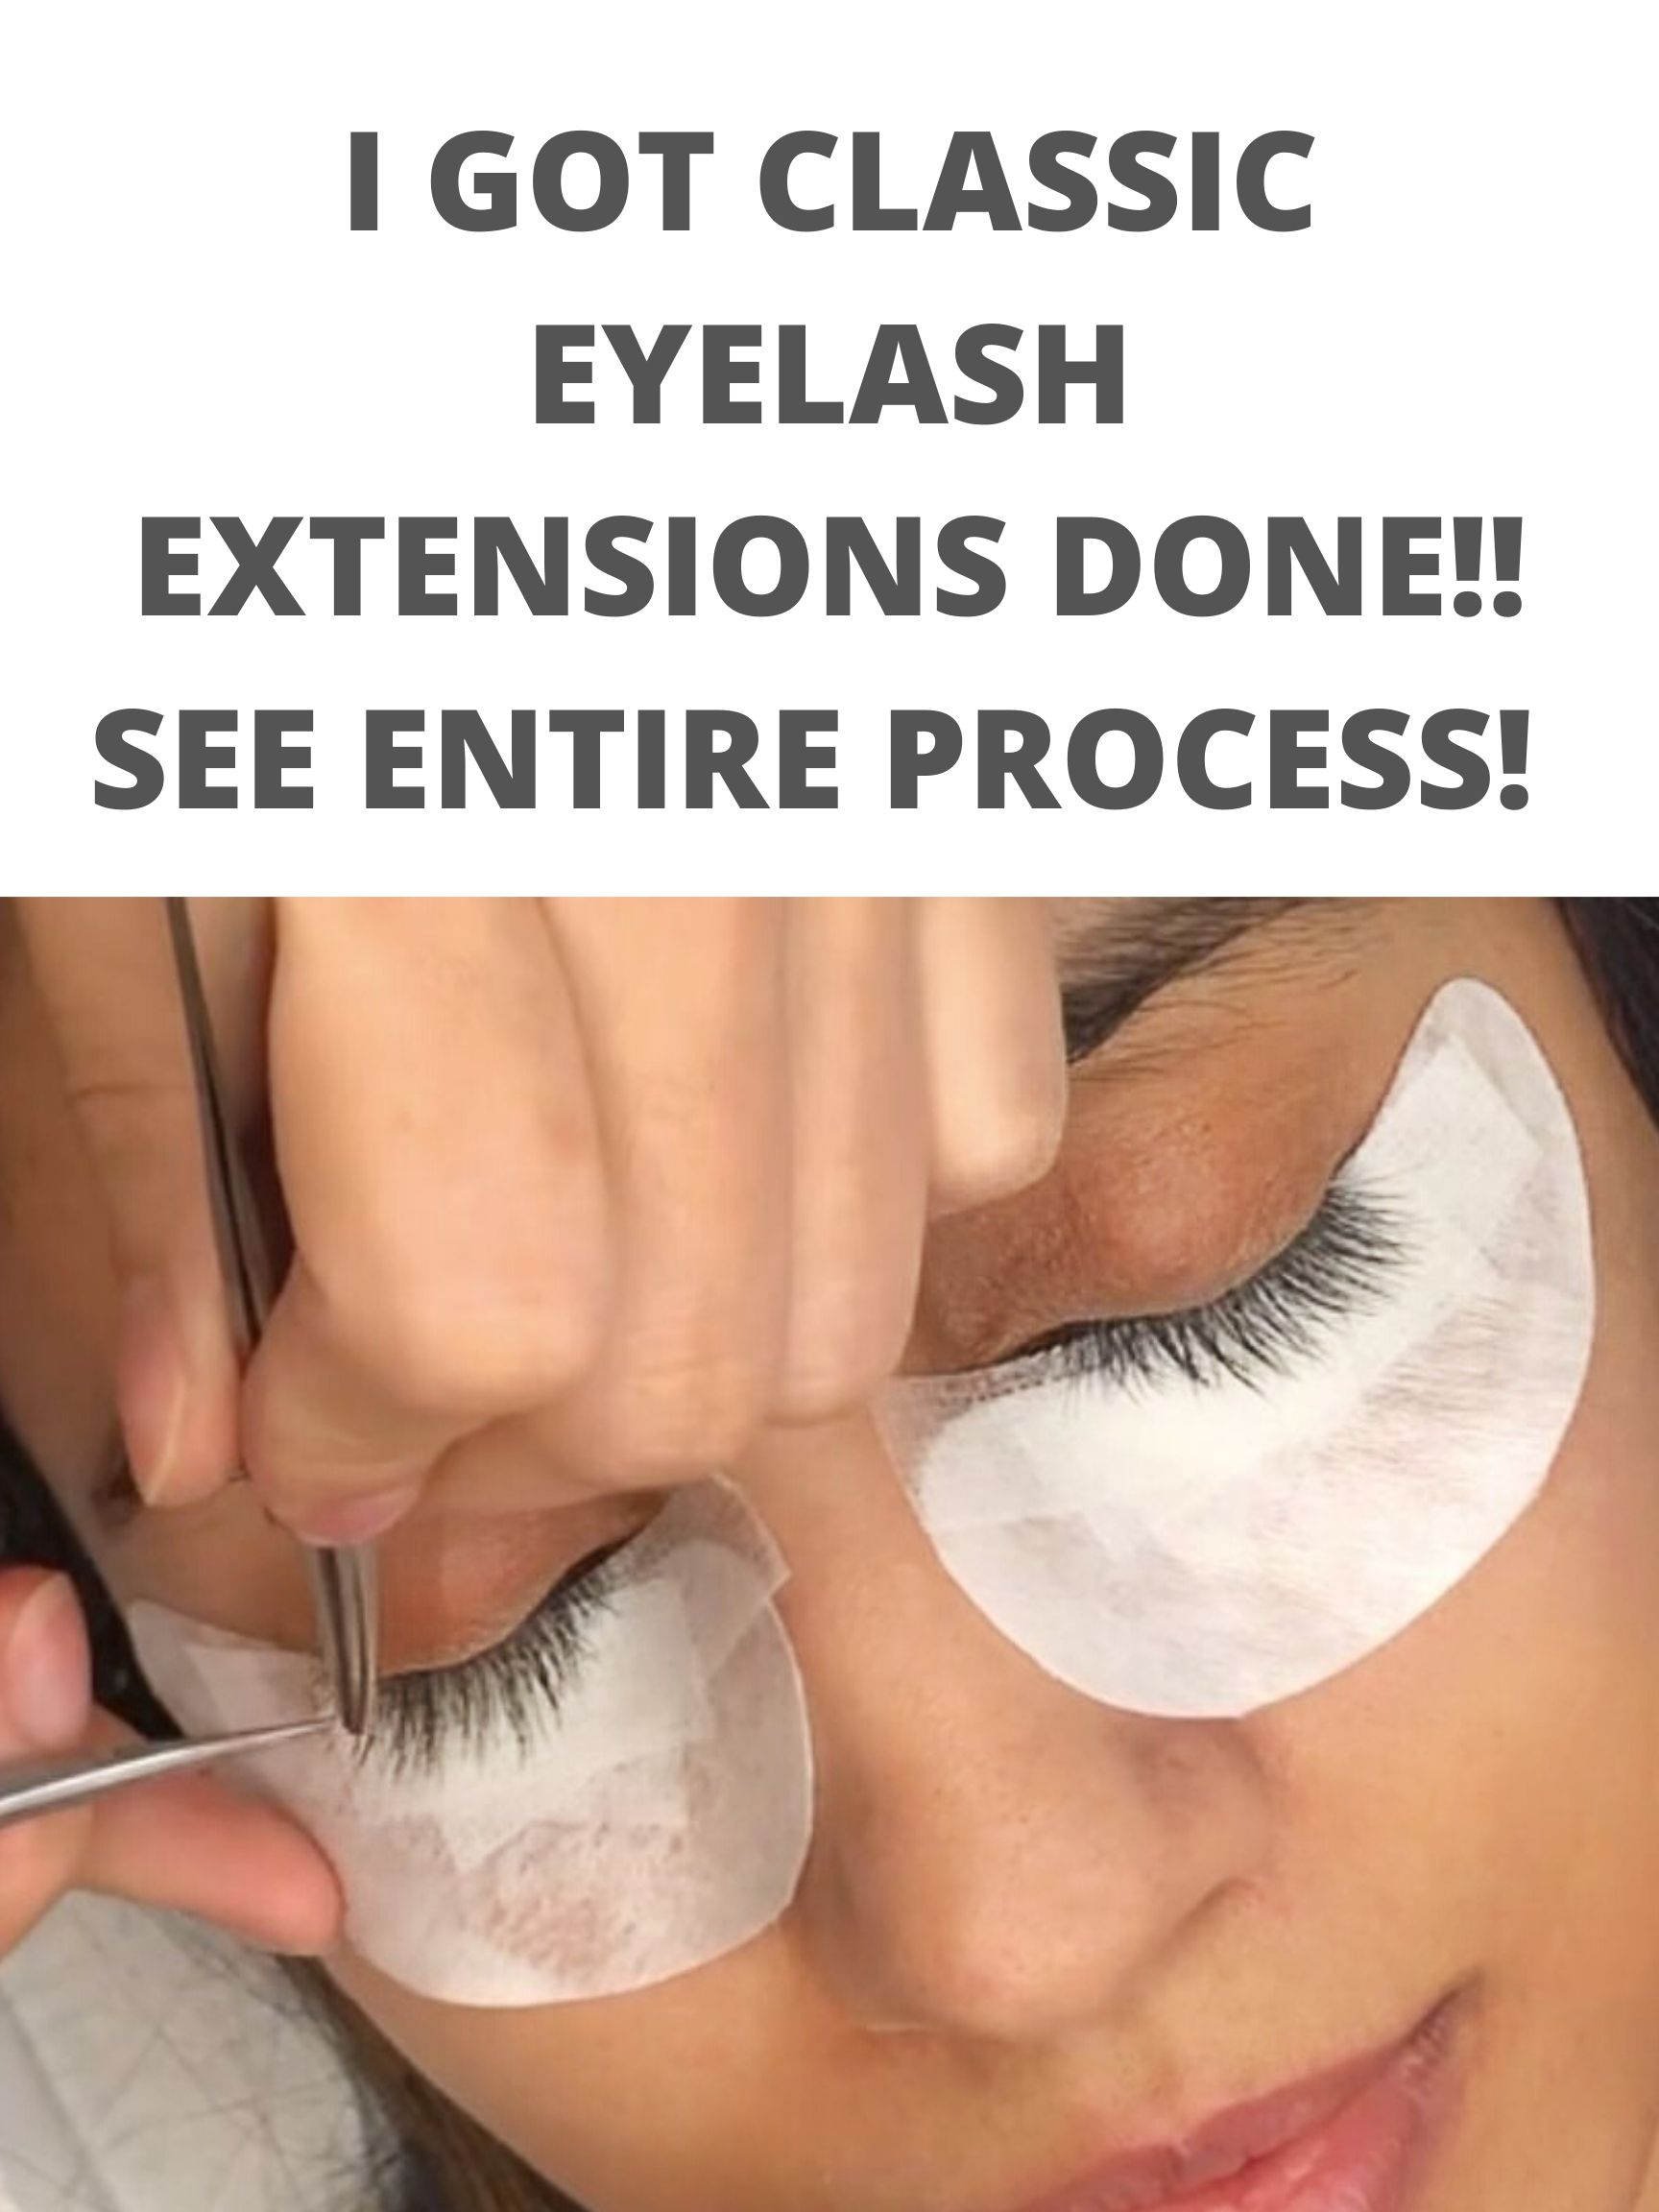 I GOT CLASSIC EYELASH EXTENSIONS DONE!! SEE ENTIRE PROCESS! THOUGHTS**